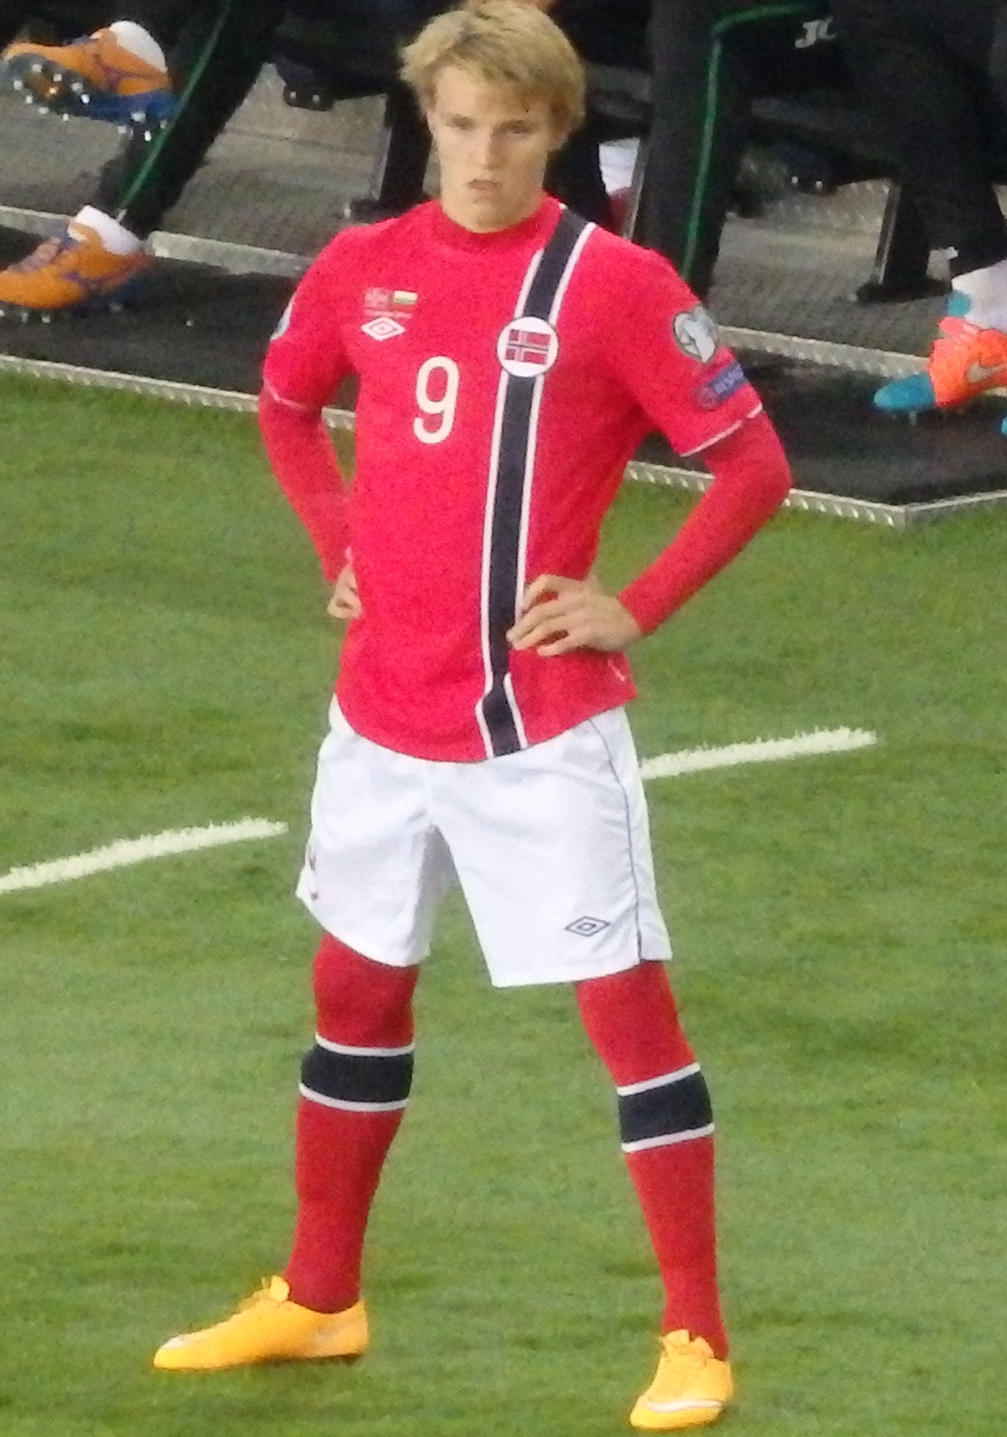 The 18-year old son of father Hans Erik Ødegaard and mother(?), 175 cm tall Martin Ødegaard in 2017 photo